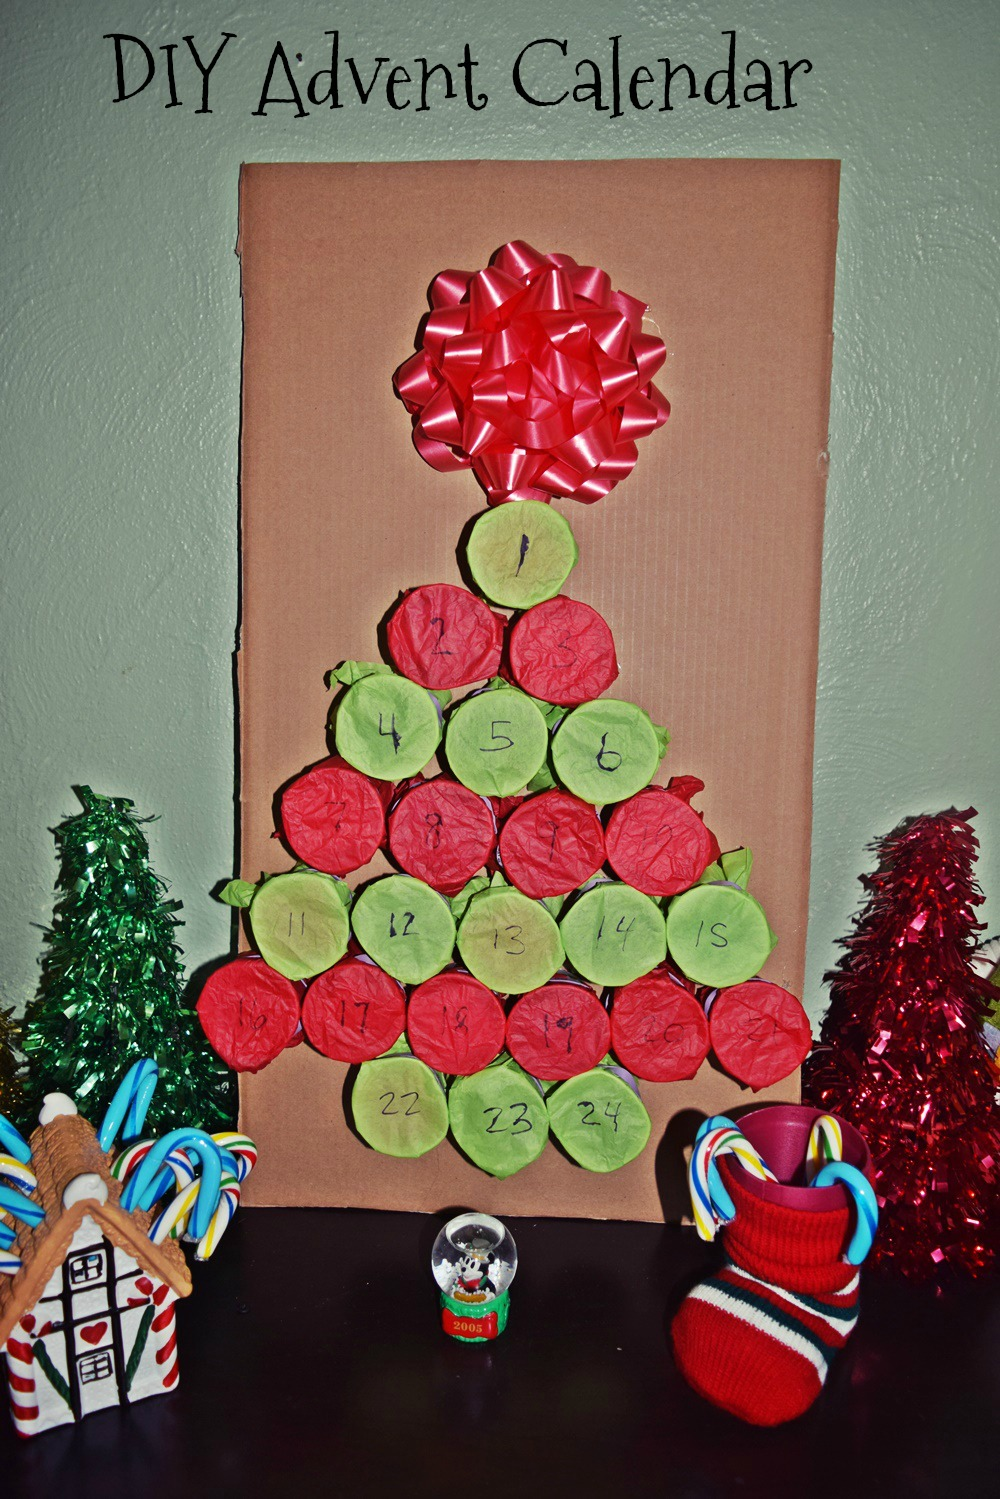 Diy holiday tree advent calendar life with kathy i decided to make this christmas tree diy advent calendar for my daughters solutioingenieria Choice Image